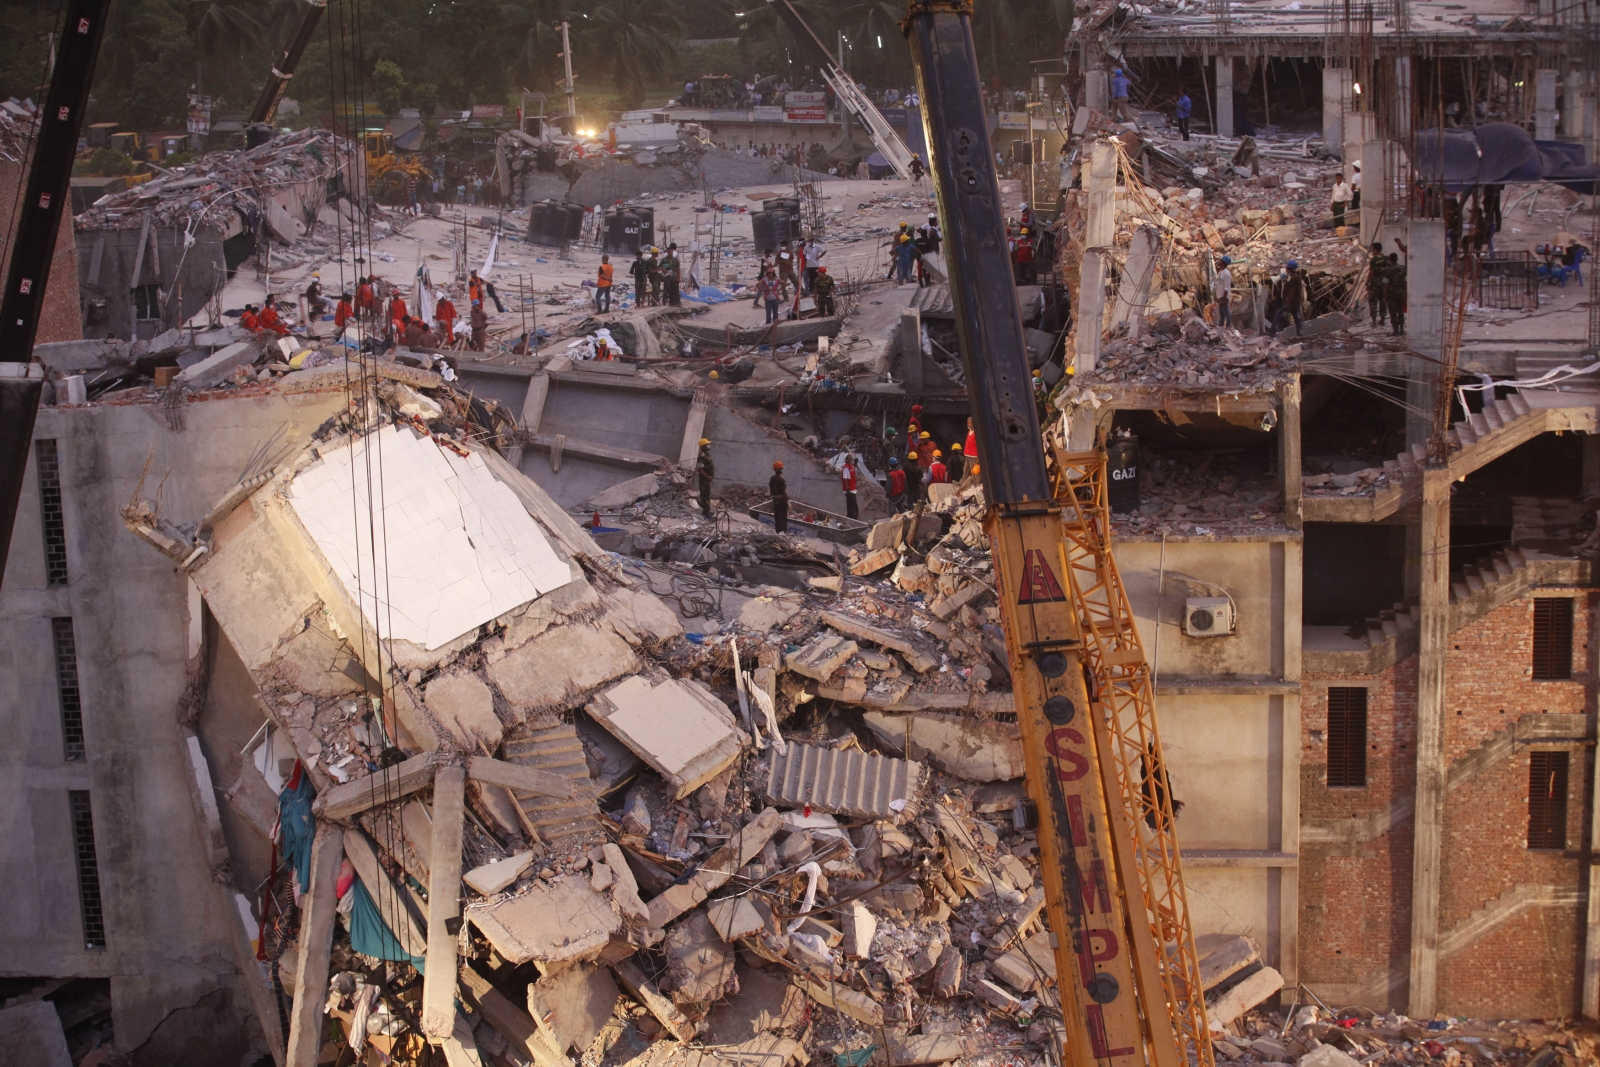 2013 Bangladesh Rana Plaza disaster